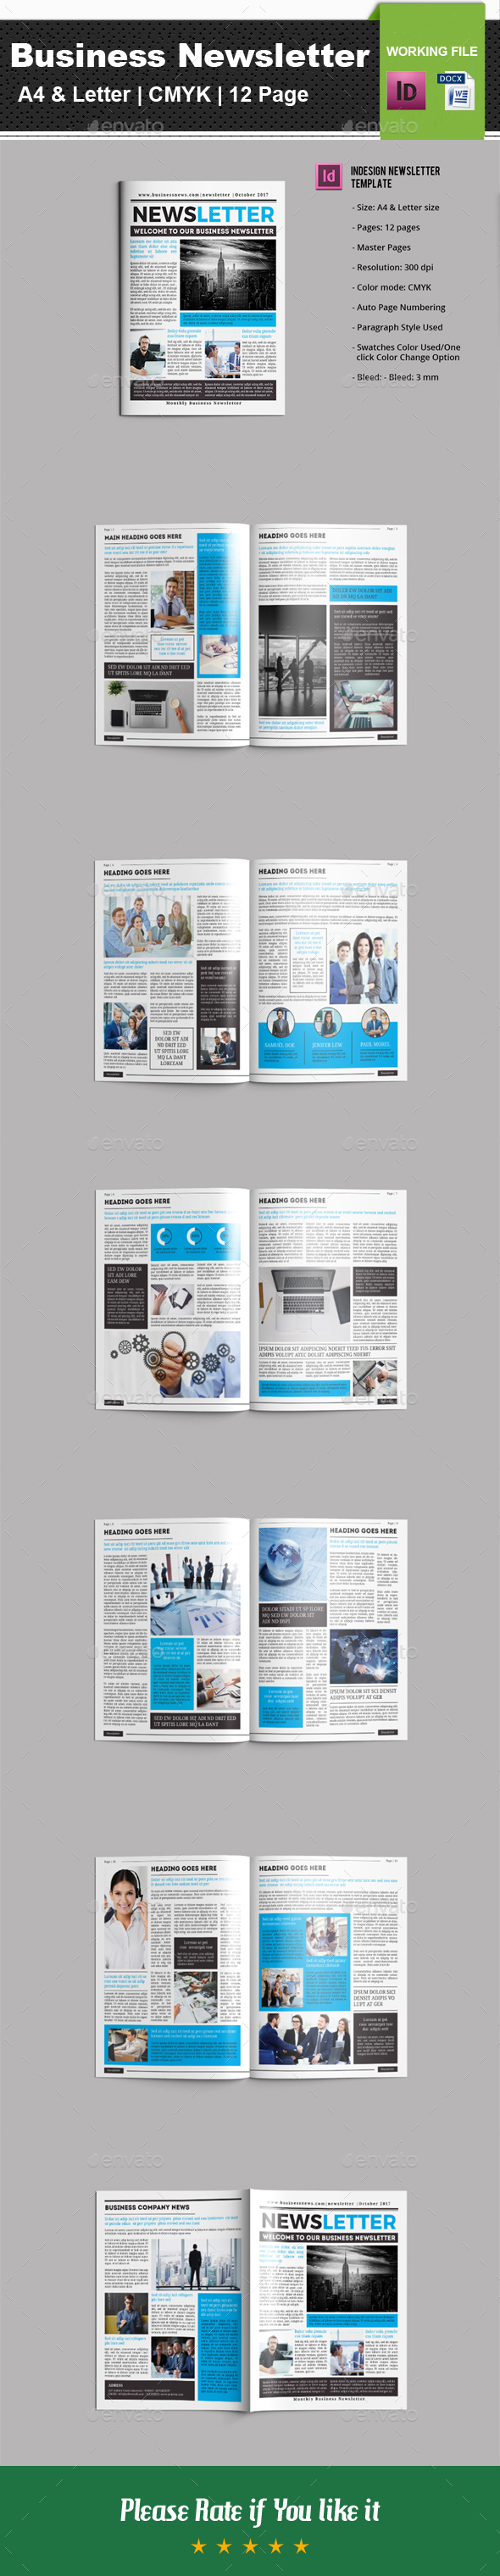 Business Newsletter V01 - Newsletters Print Templates